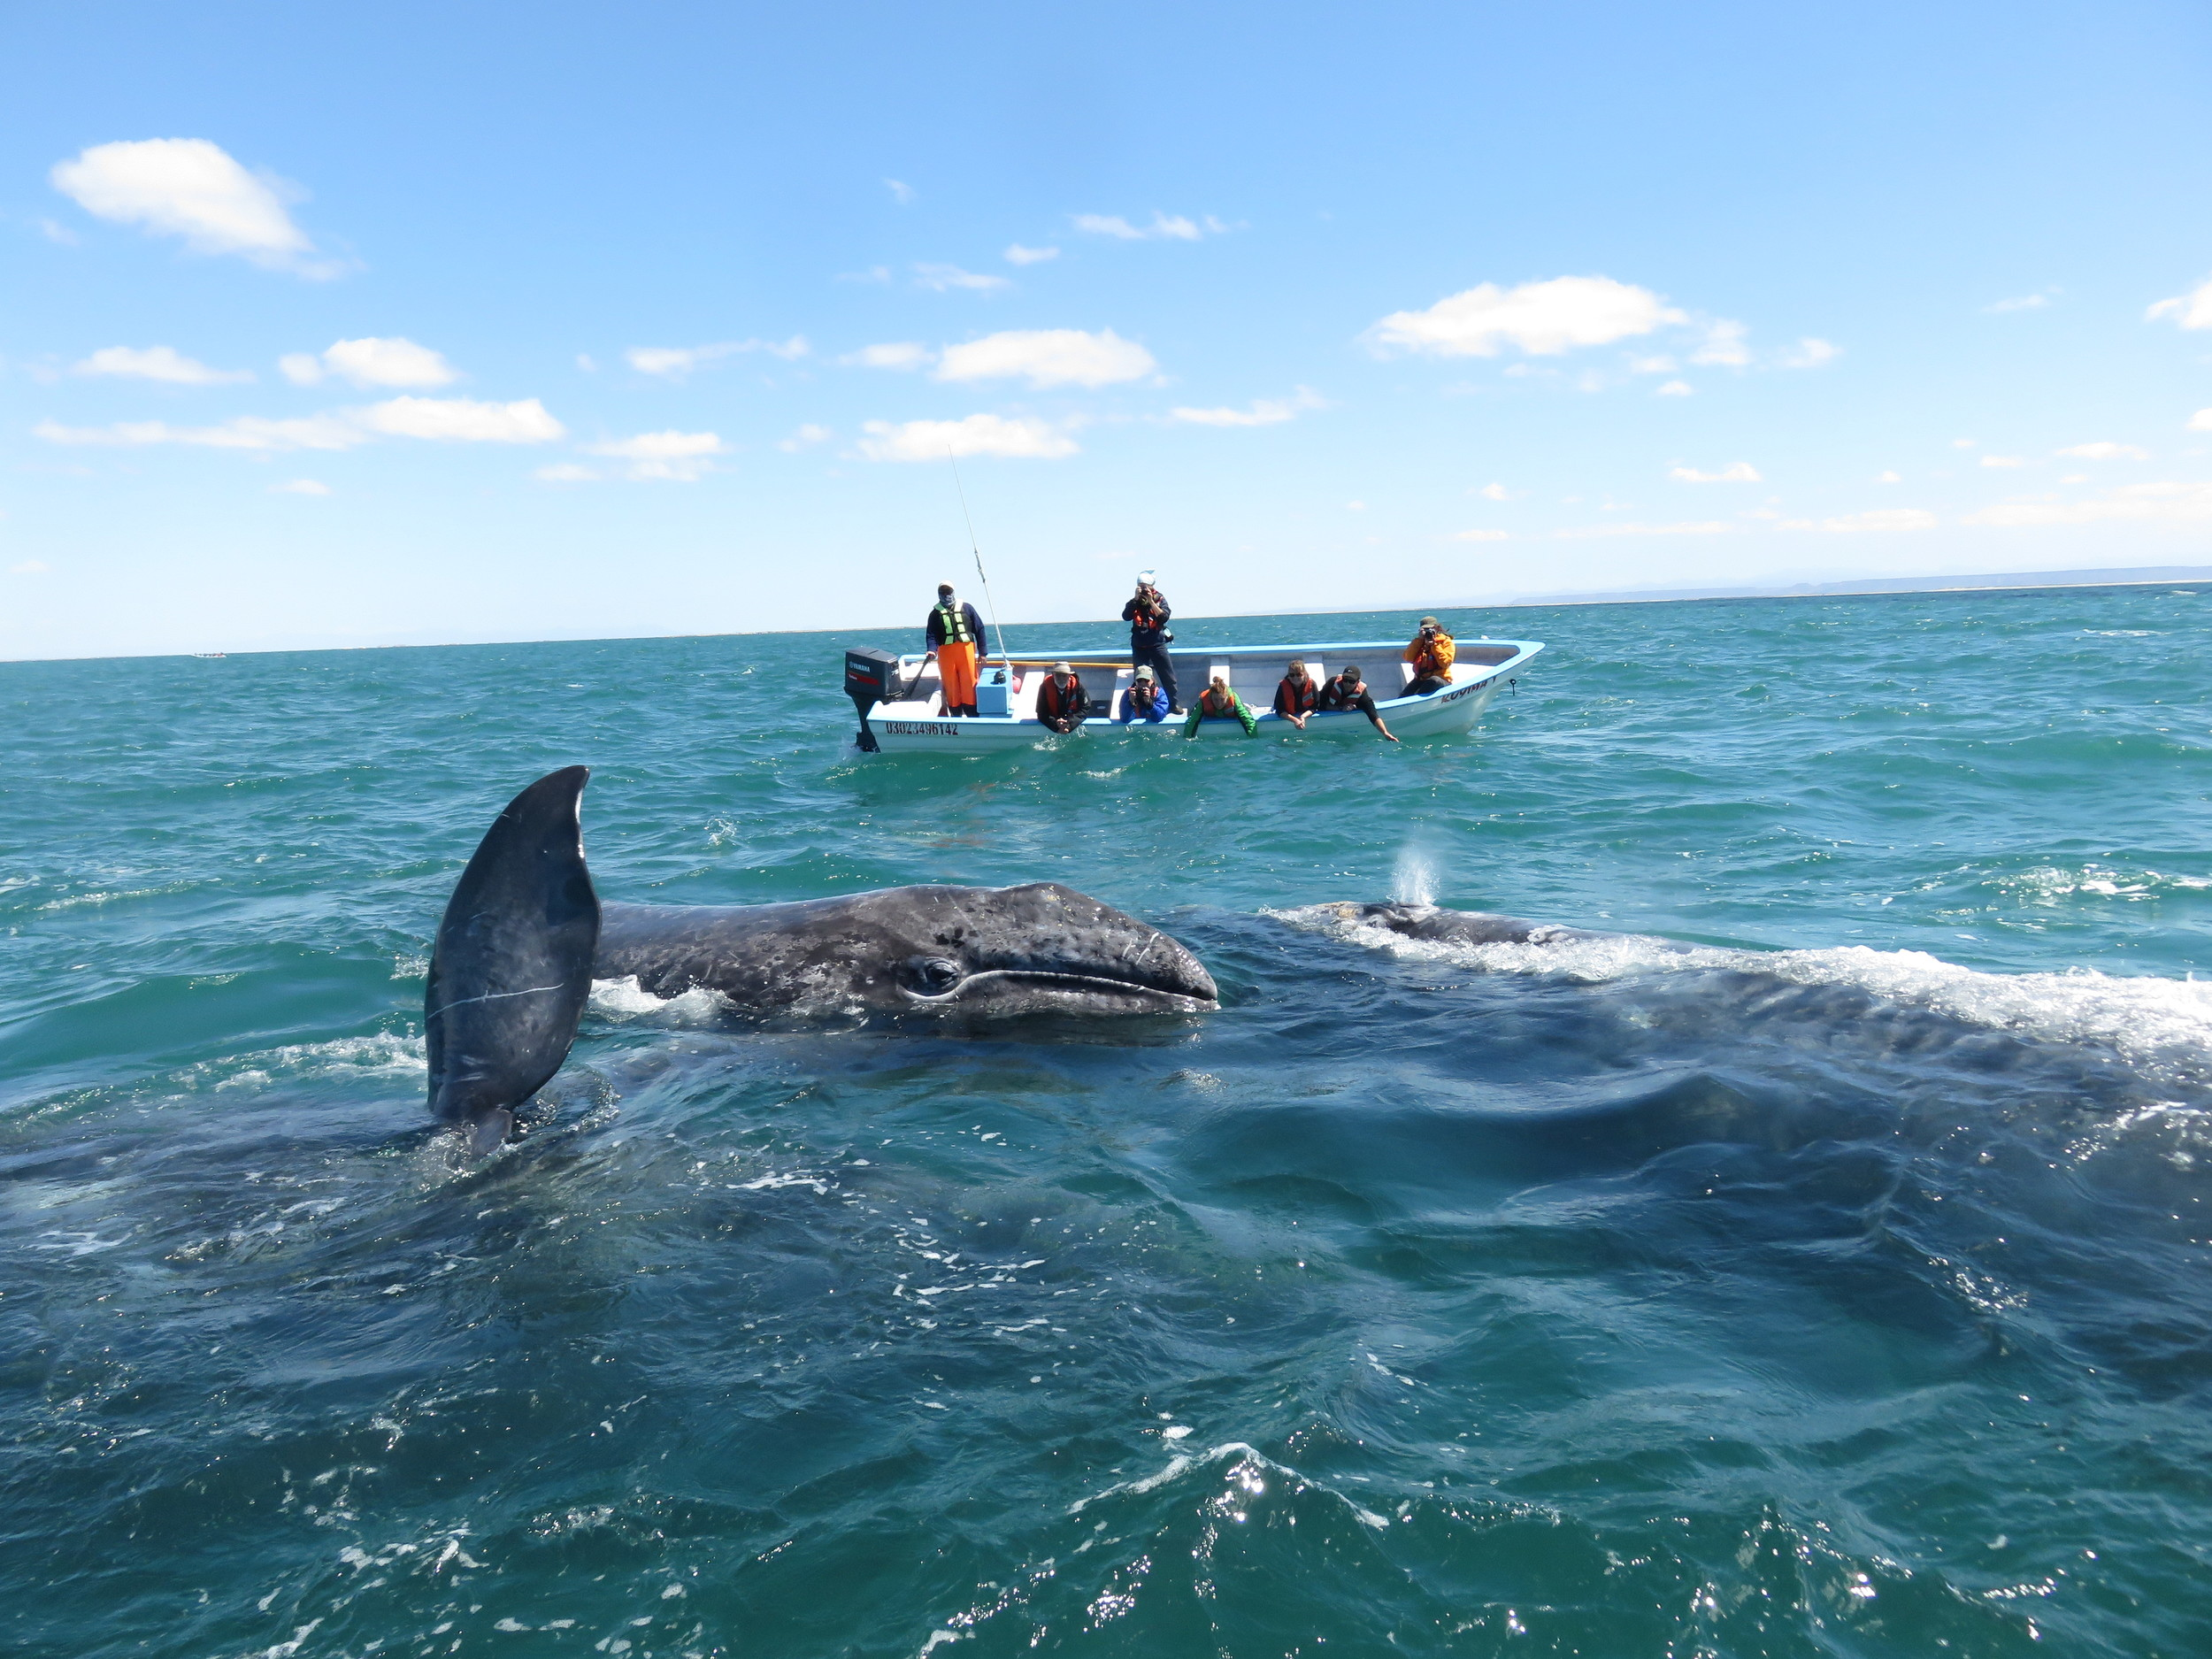 photo credit goes to a generous guest on the trip who put this photo on the shared drive.   I am the idiot standing up in the panga to get a better view.  In my defense, I am also trying to balance the boat out a little, despite Maggie's best effort to join the whales.